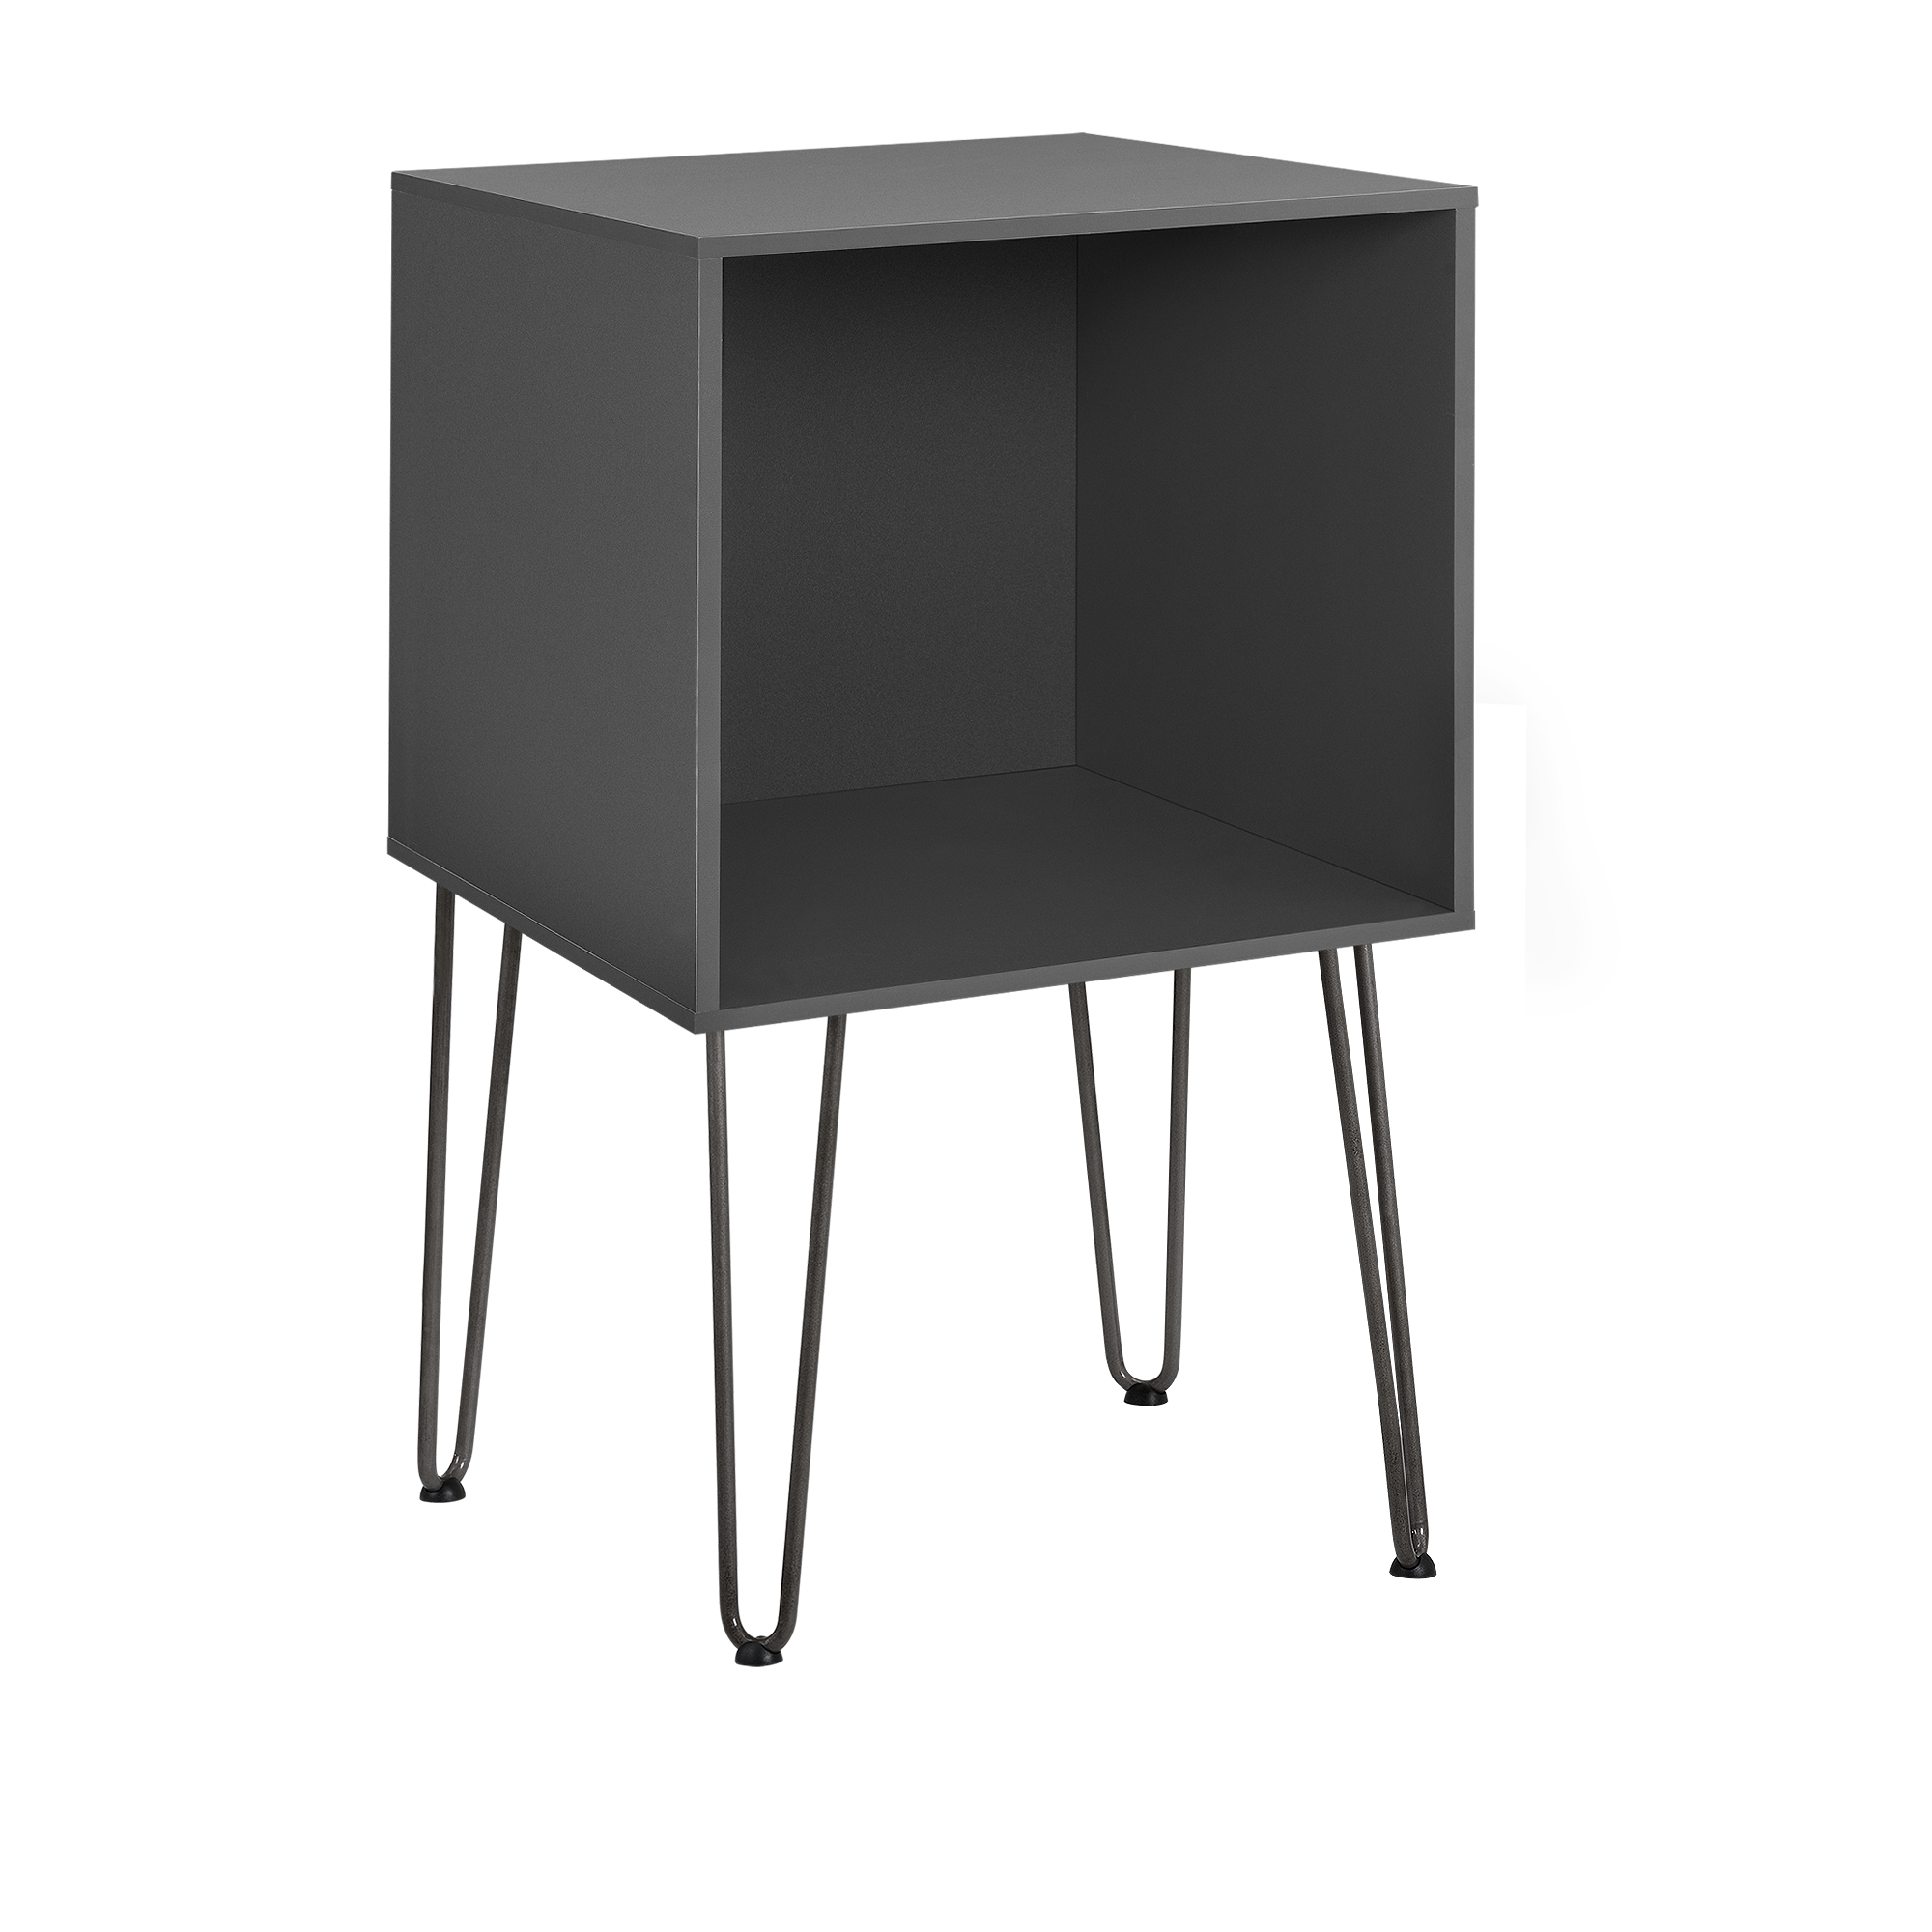 beistelltisch mit hairpin legs nachttisch. Black Bedroom Furniture Sets. Home Design Ideas